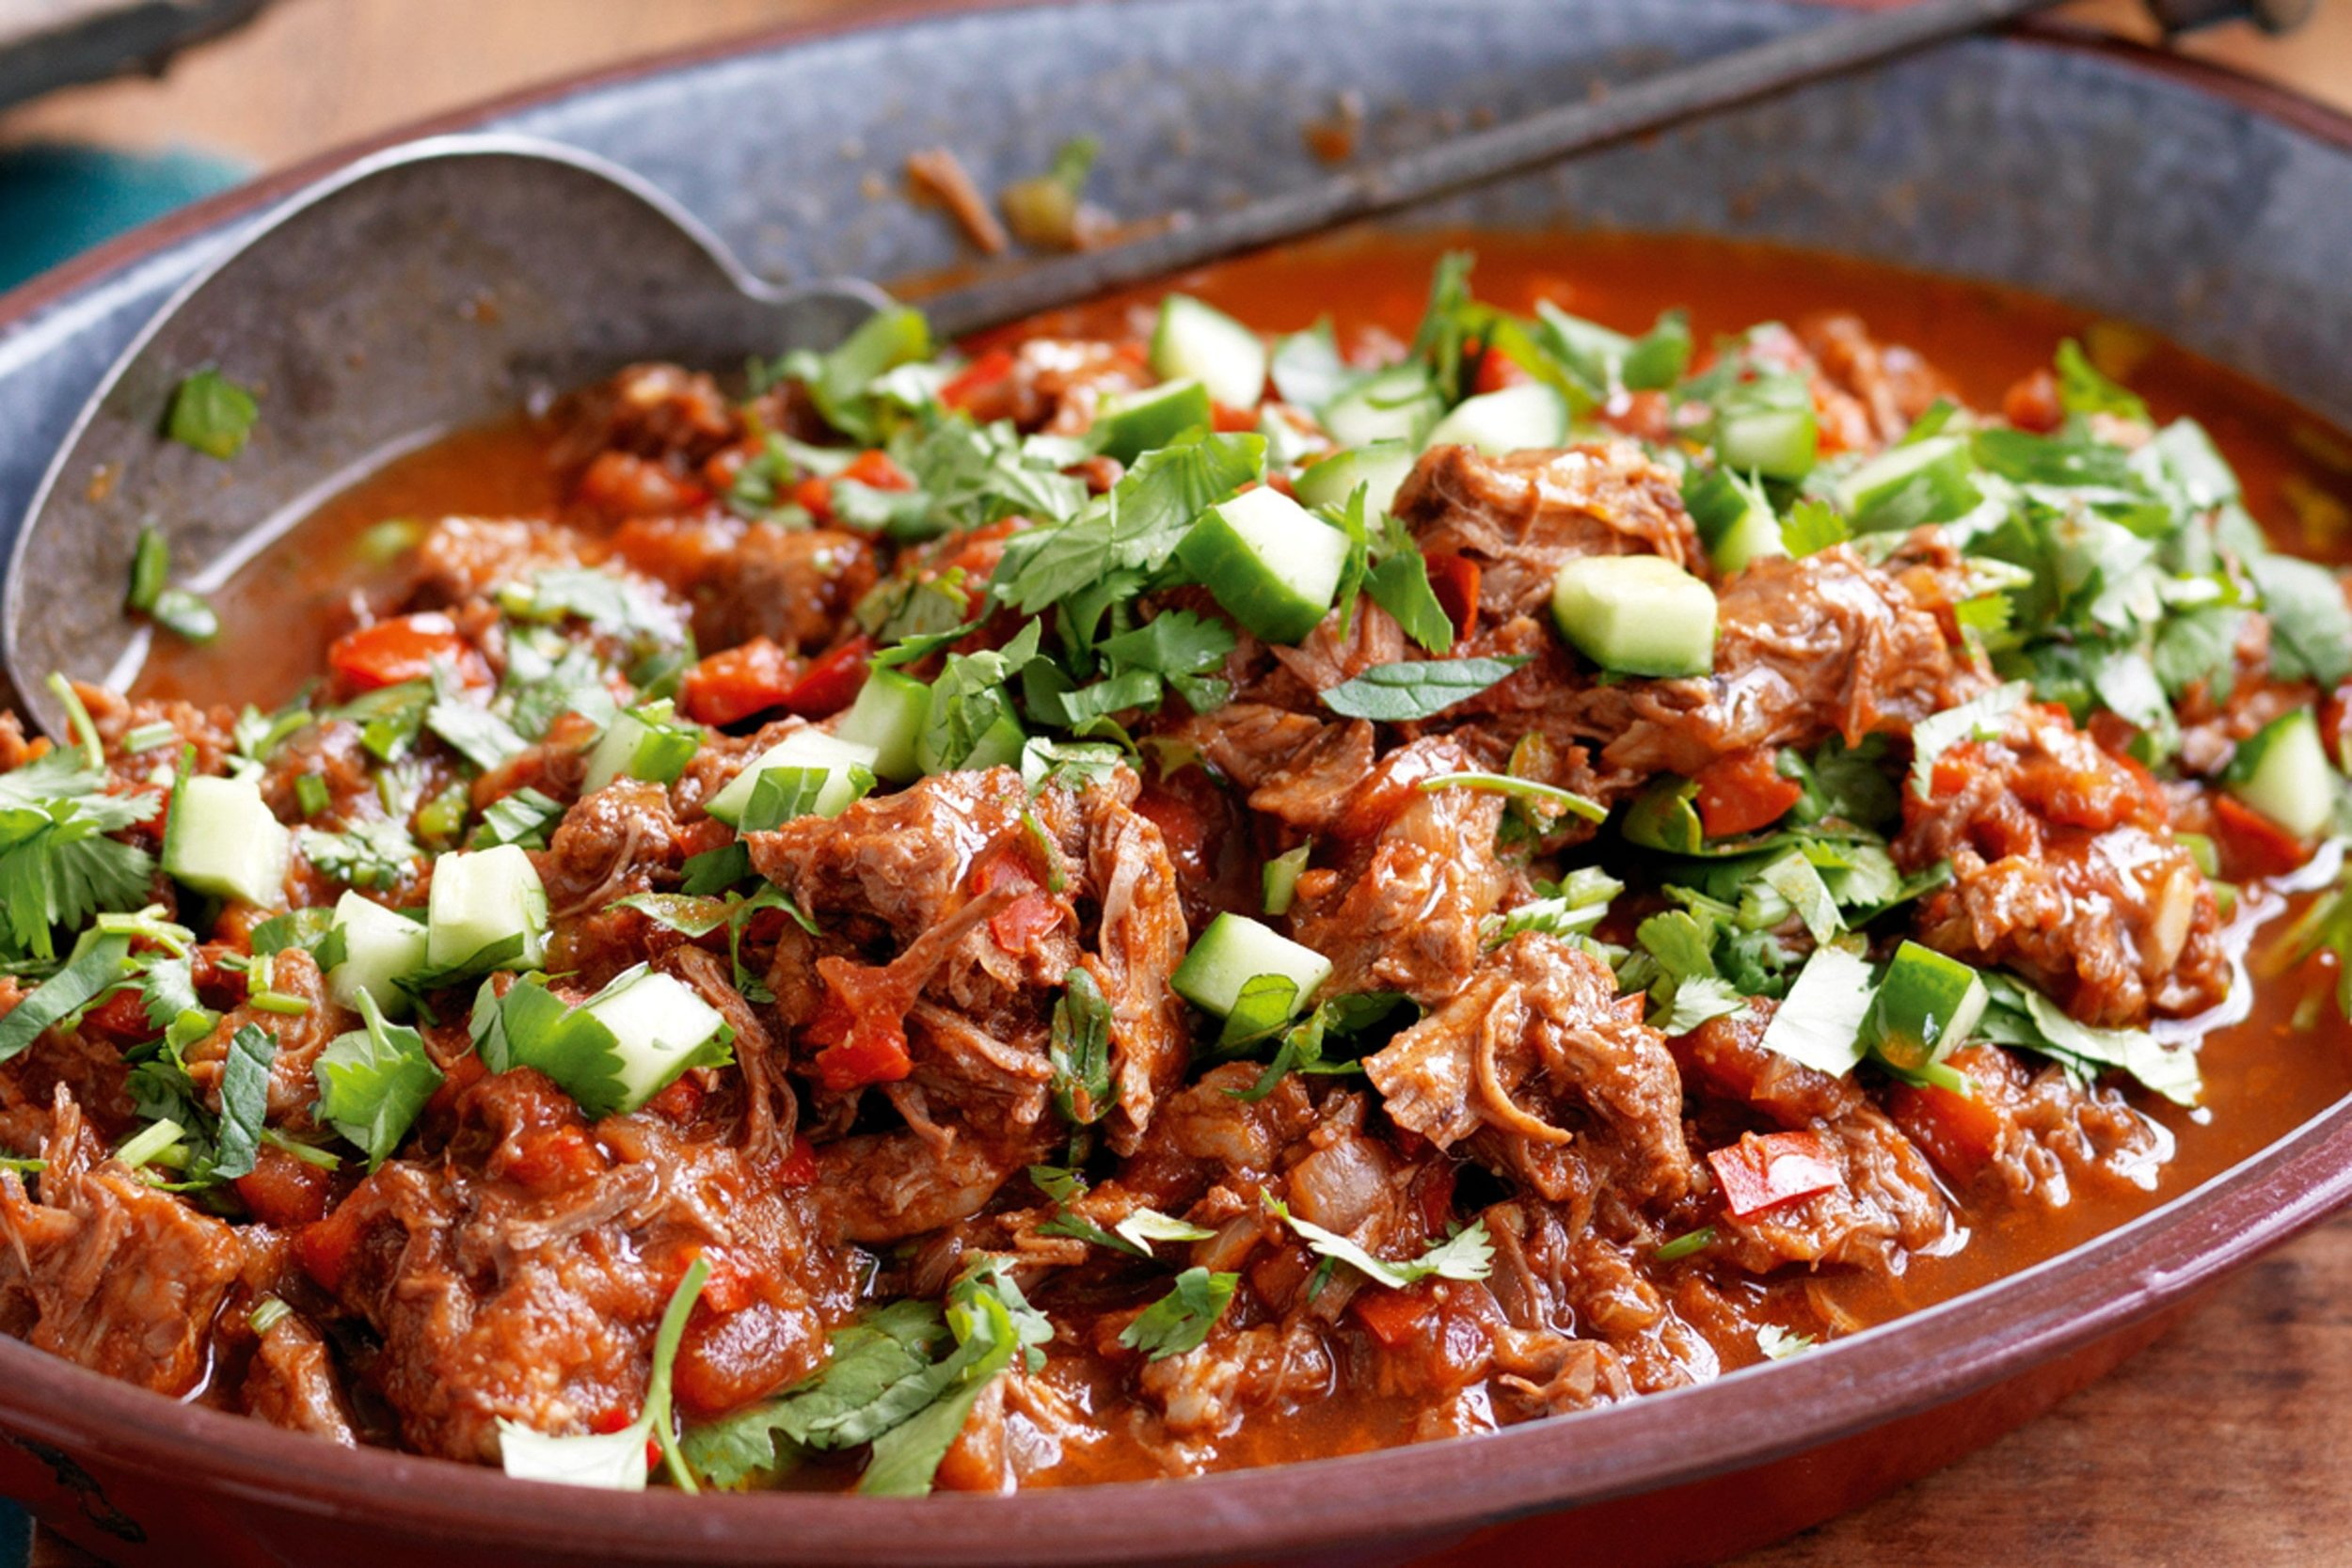 chili_con_carne_ican_nutrition.jpeg